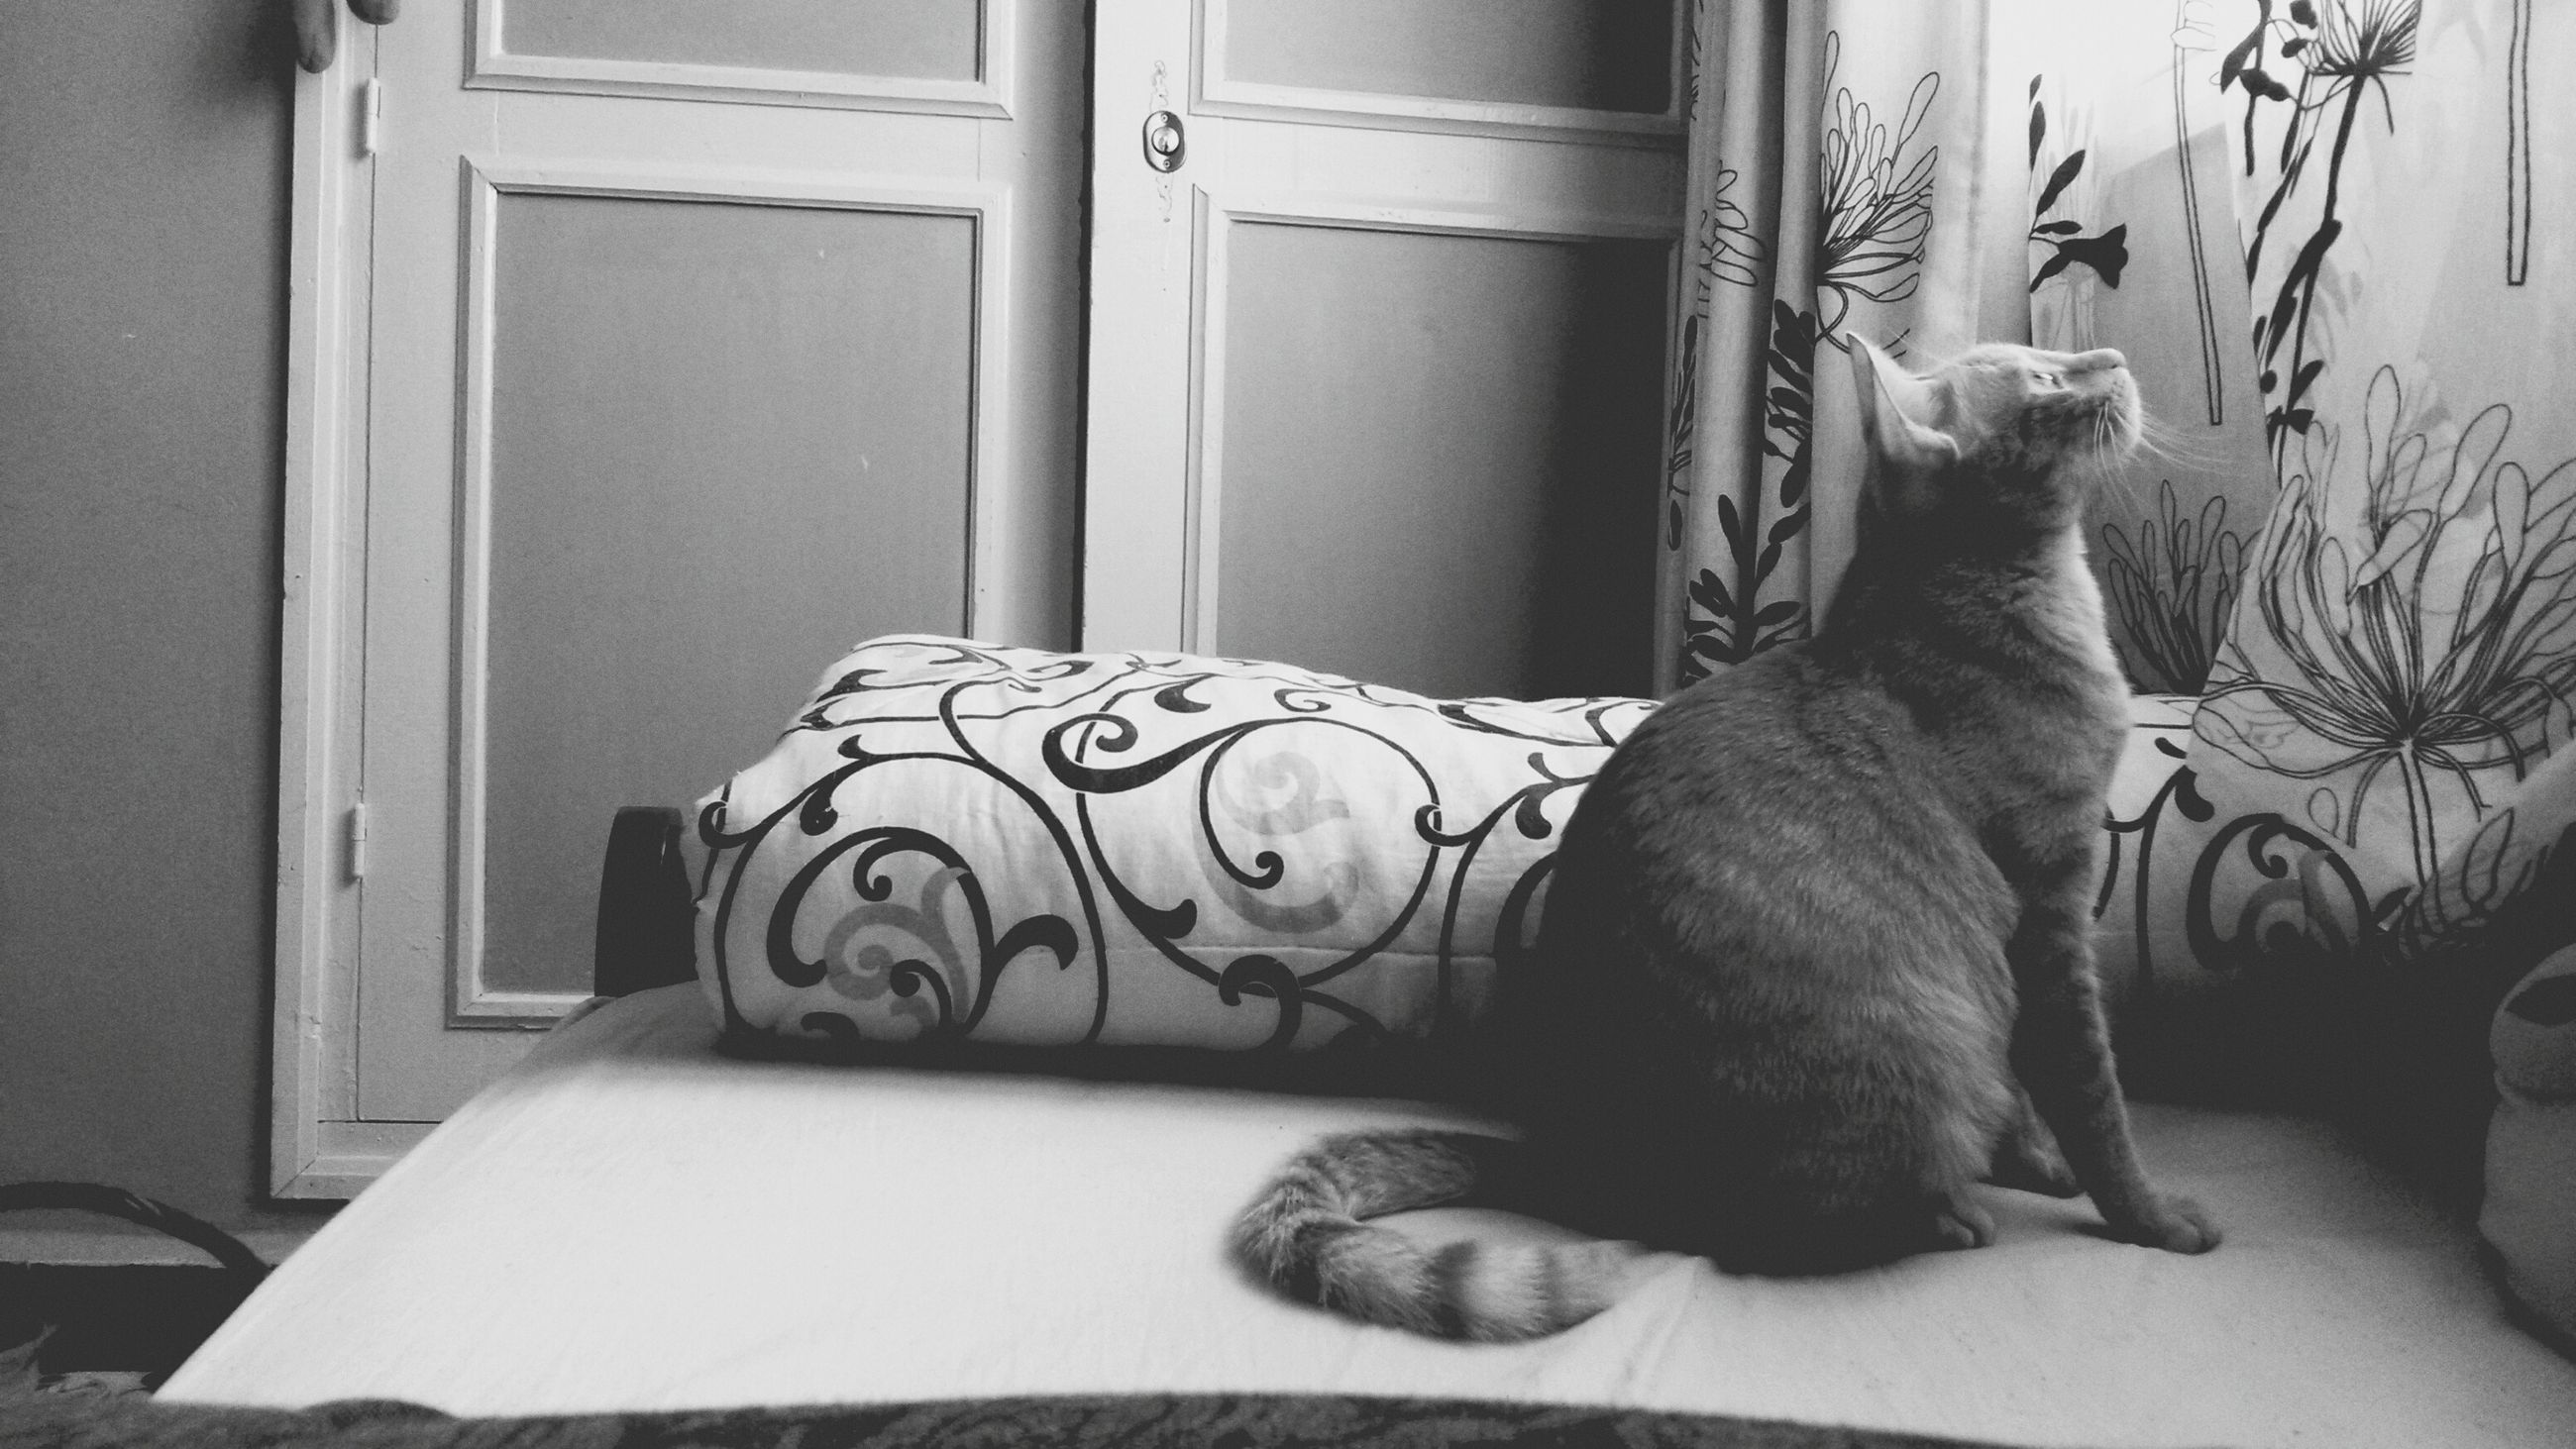 indoors, pets, domestic animals, mammal, one animal, animal themes, home interior, domestic cat, cat, relaxation, bed, feline, lying down, resting, dog, sofa, home, house, door, window